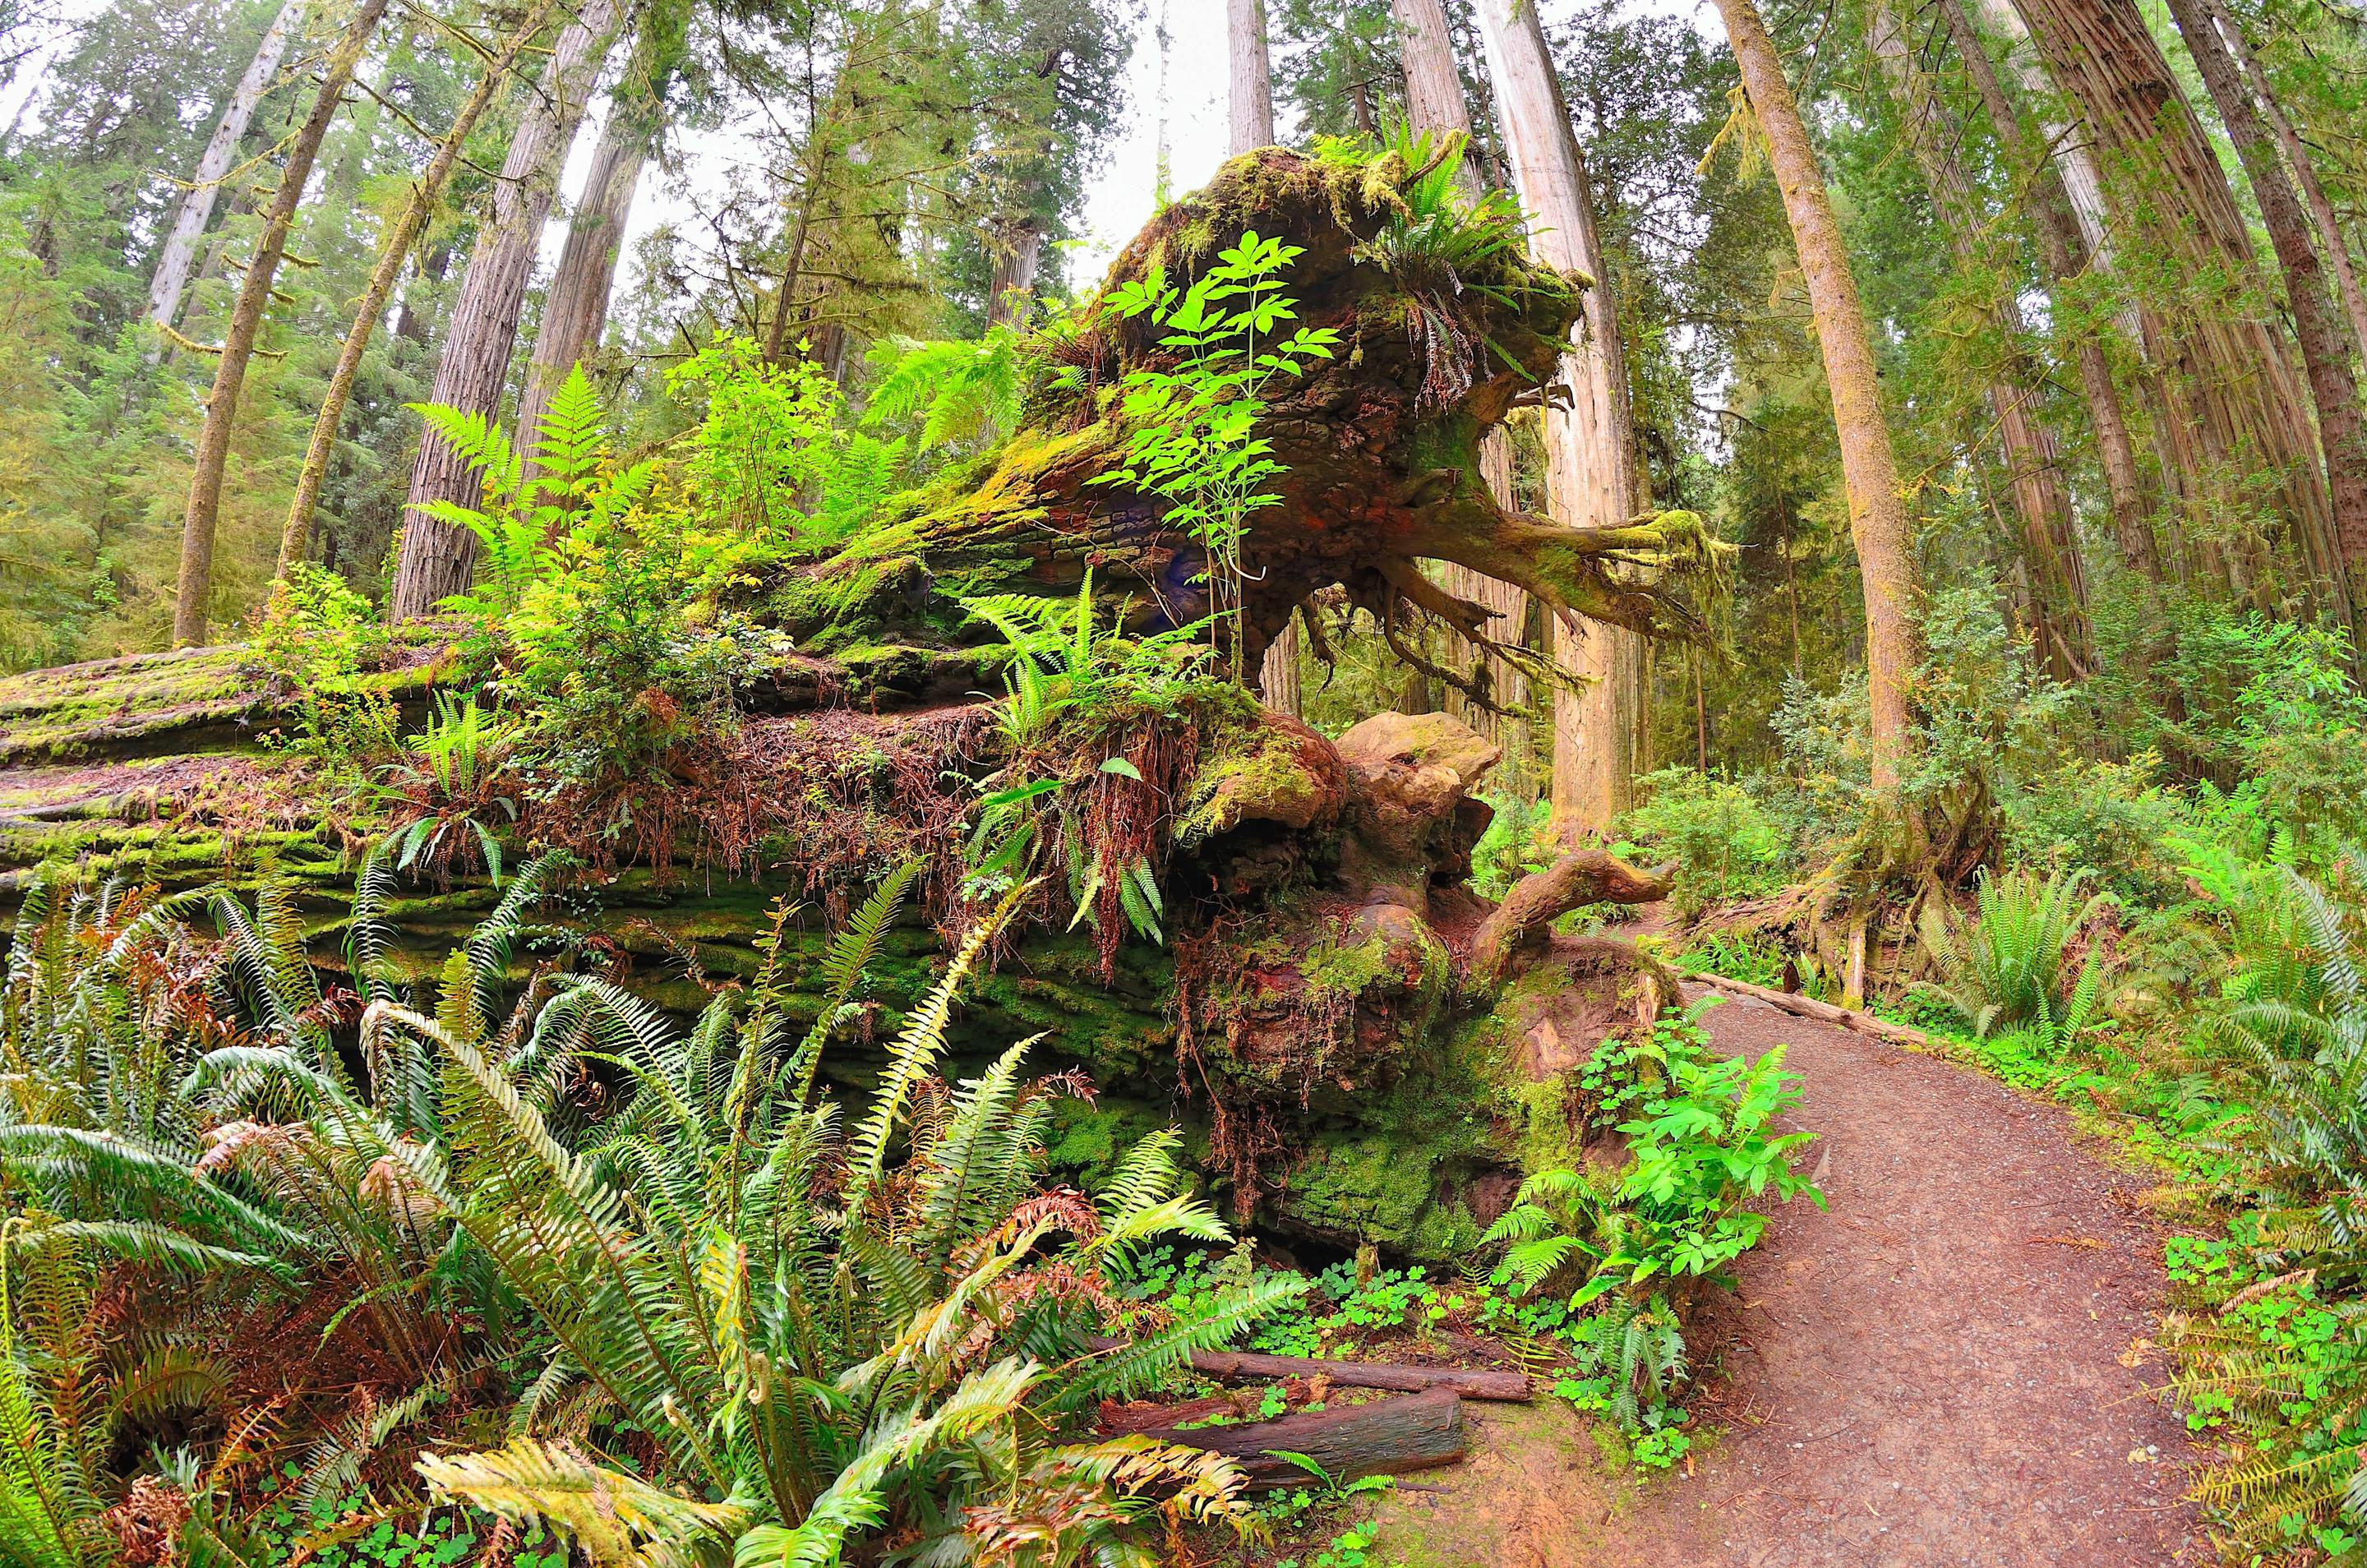 Nurse log on the side of a trail.A fallen redwood tree will be on the forest floor for centuries providing habitat for a new generation of plants and animals.